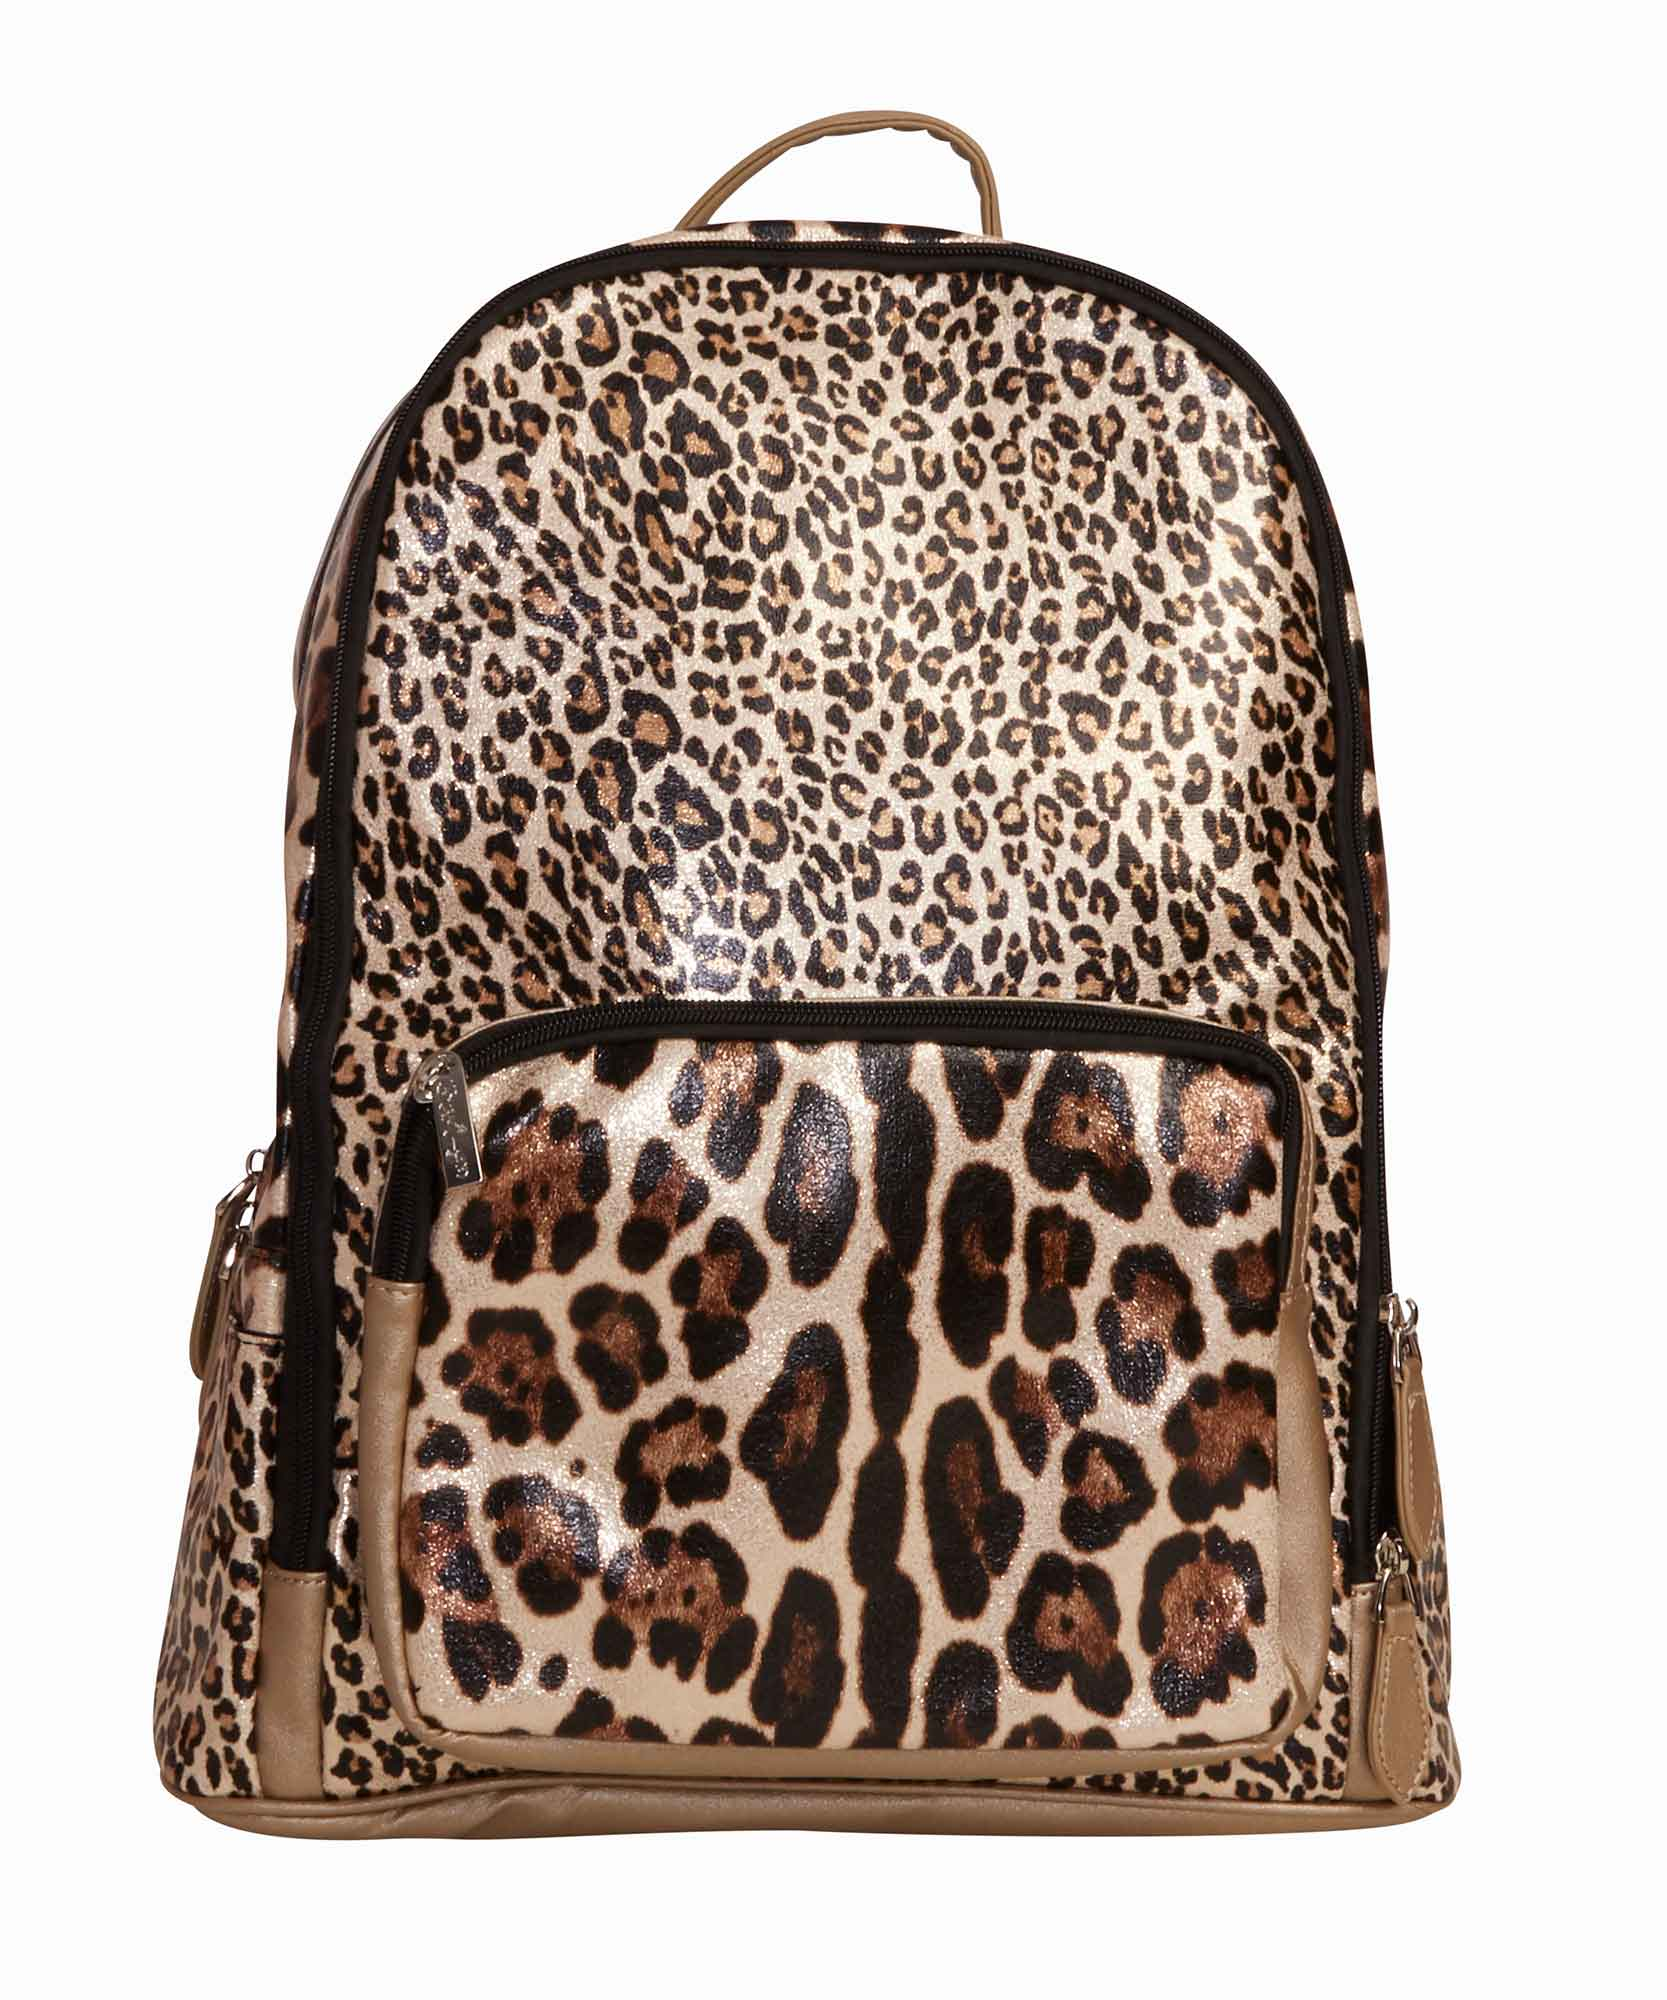 Gold Leopard Backpack